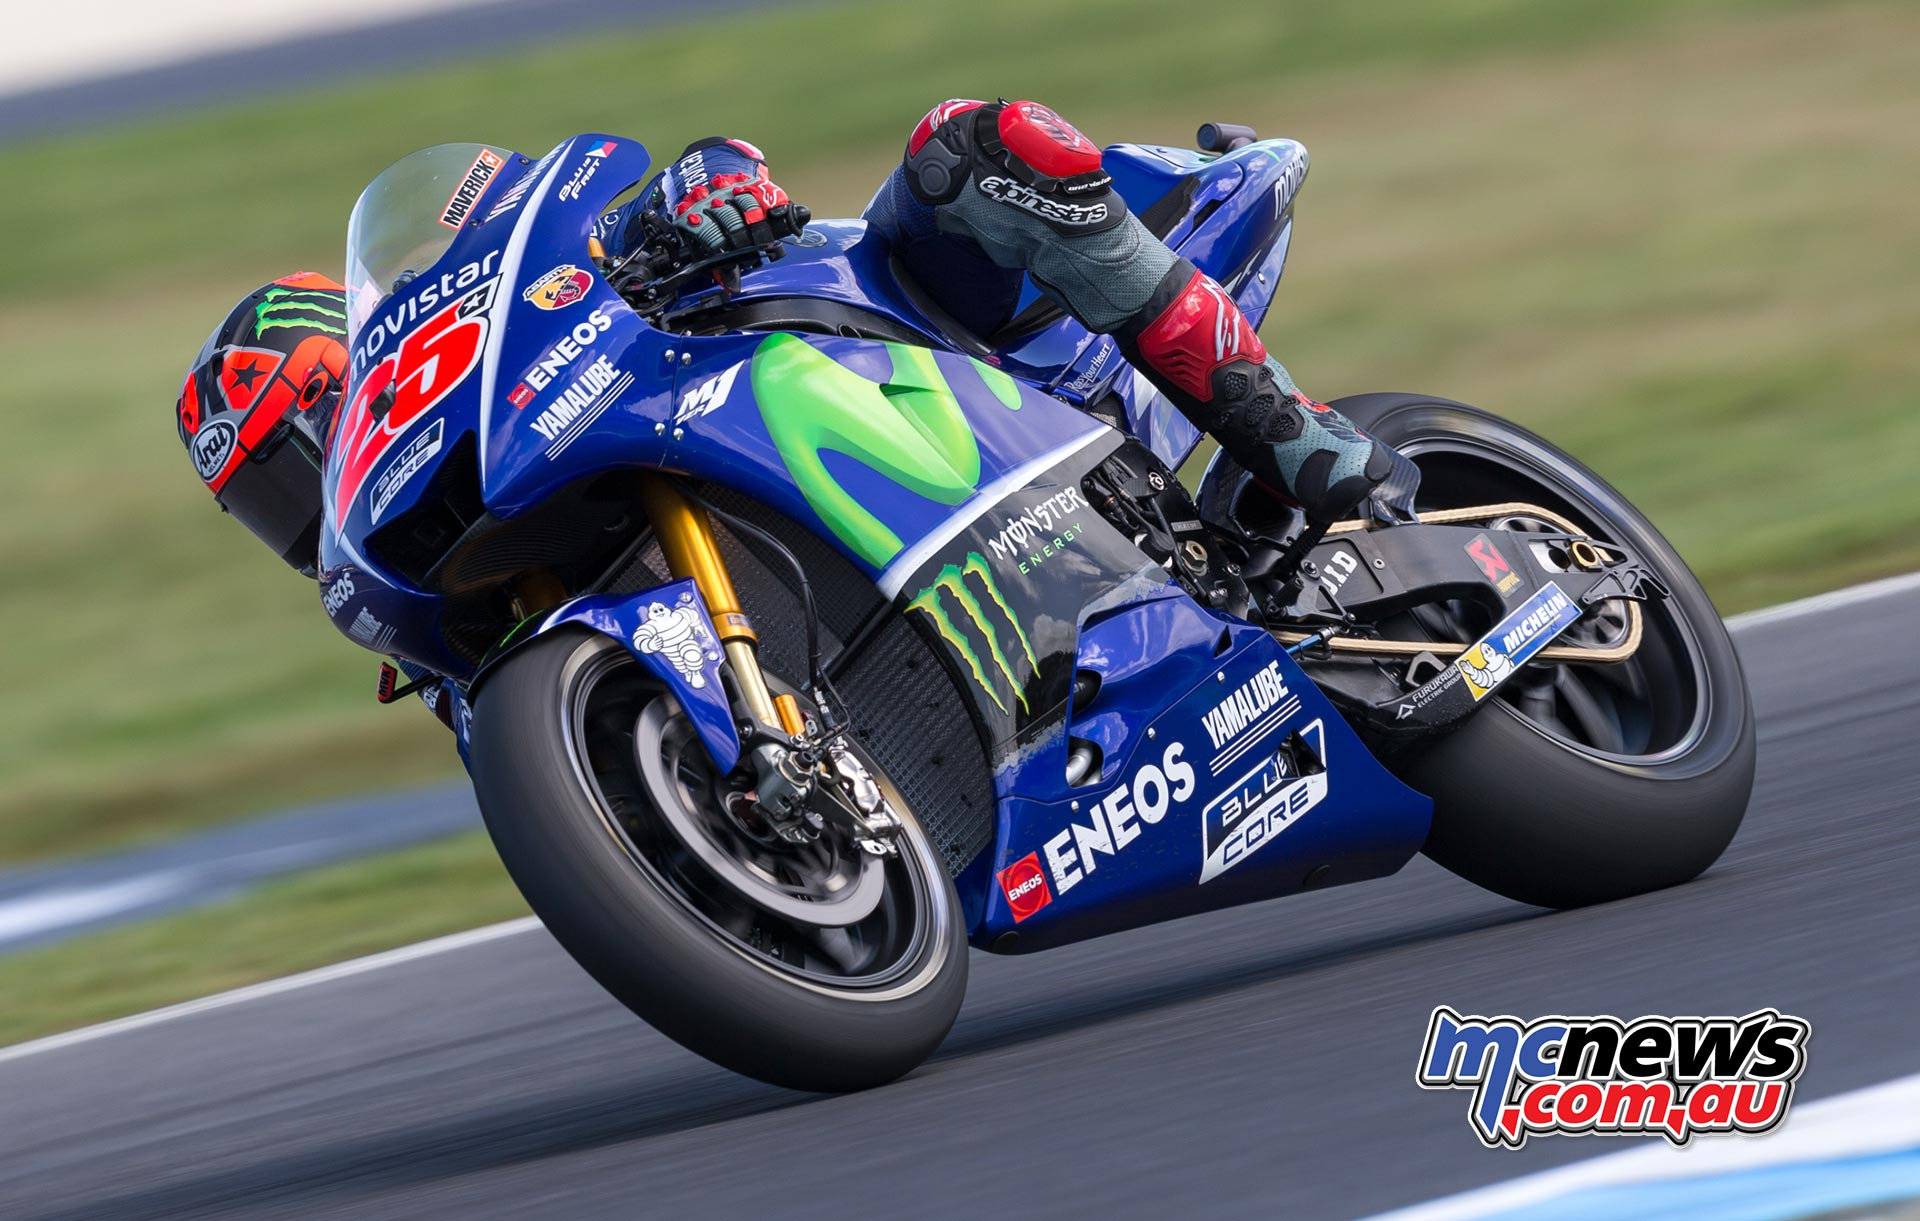 Maverick Vinales is looking to end his season on high